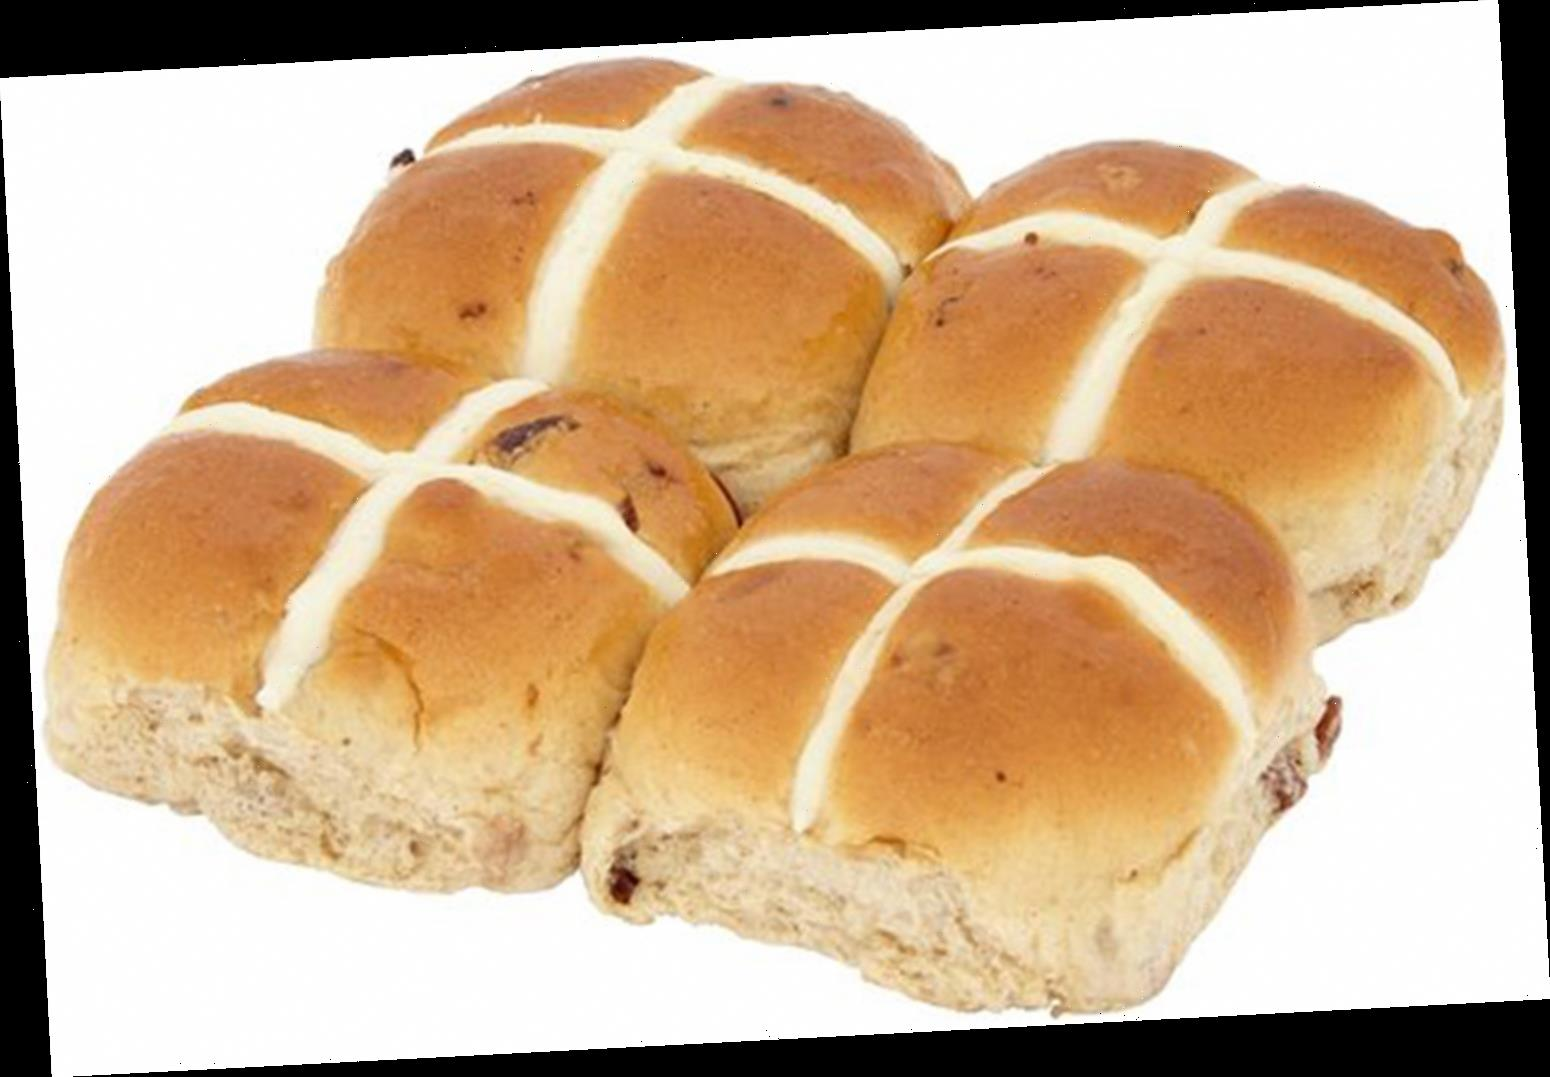 Tesco has brought back its salted caramel and chocolate chip hot cross buns – and you can nab eight for £1 – The Sun